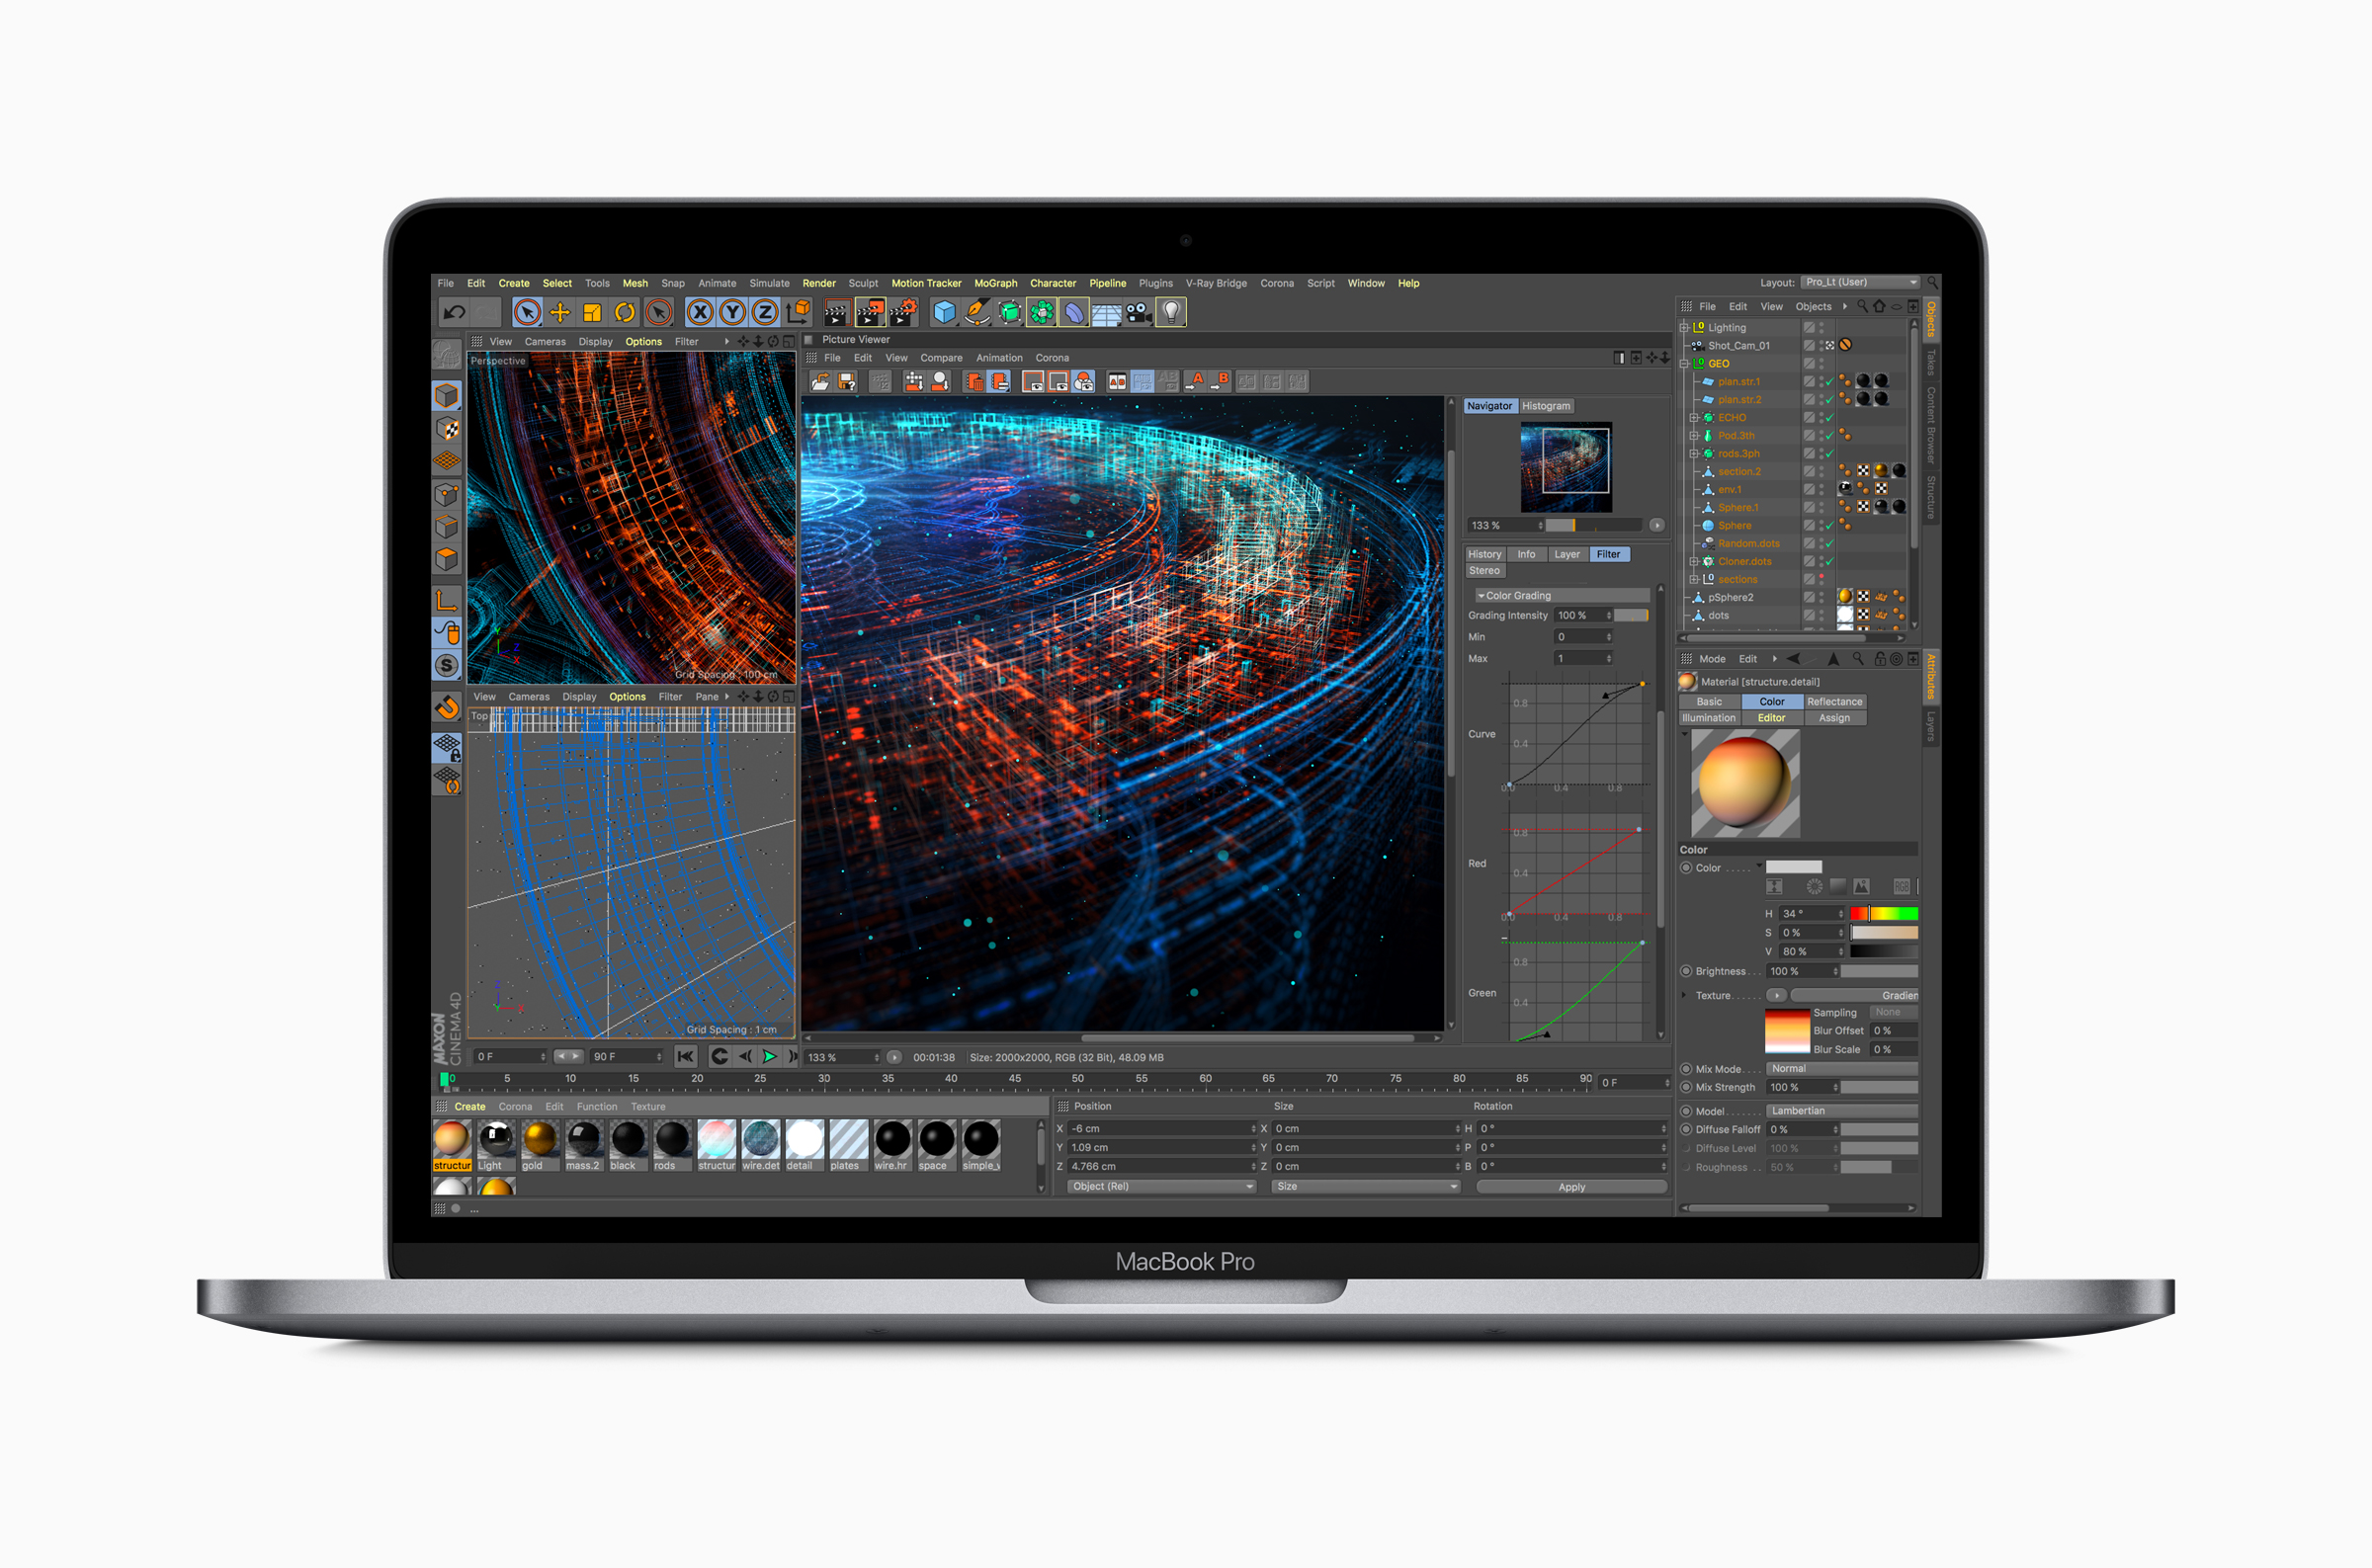 Apple updates MacBook Pro with Touch Bar bringing faster performance ...